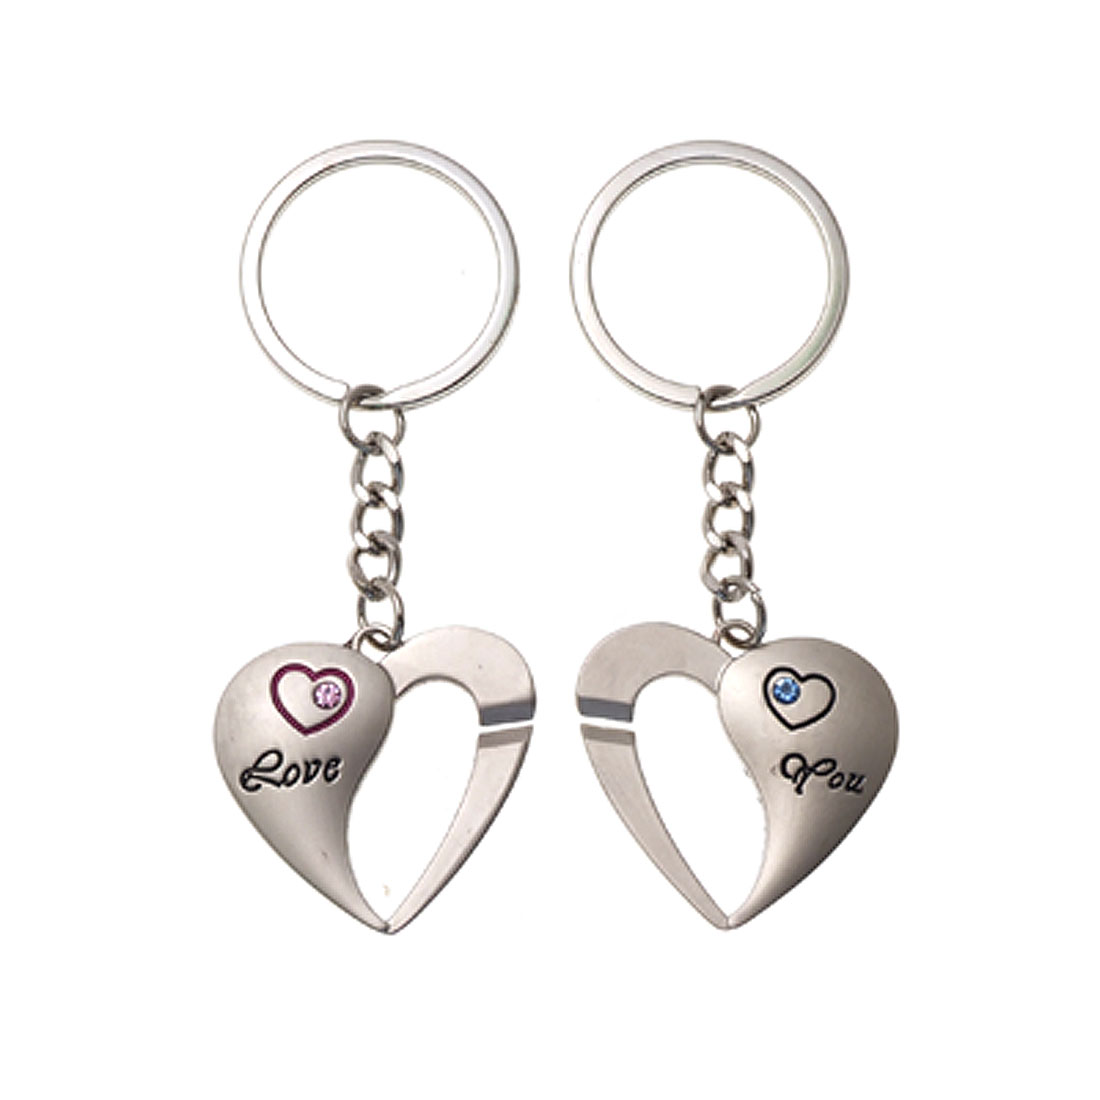 Lover Couple Pairs Silver Tone Heart Alloy Key Chain